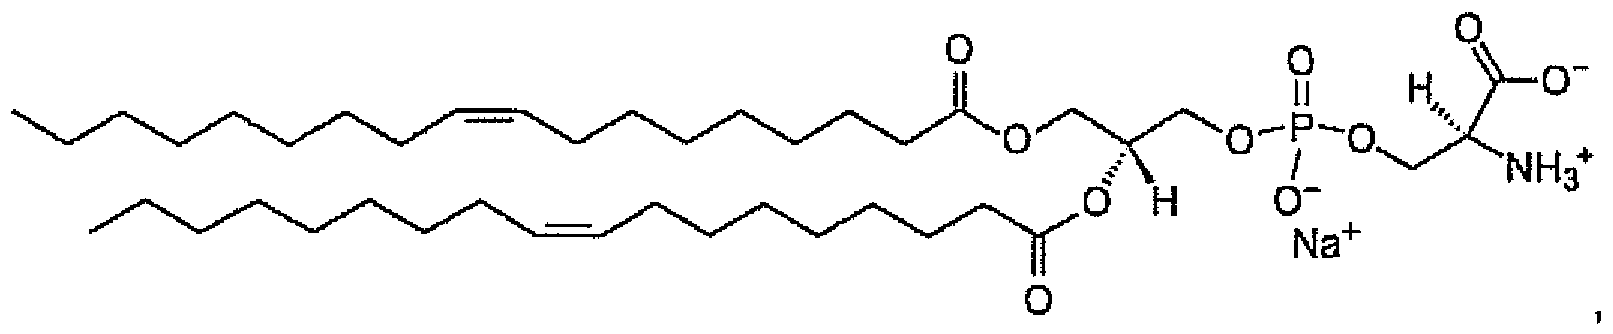 Patent WO2010078569A2 - Porous nanoparticle supported lipid ...